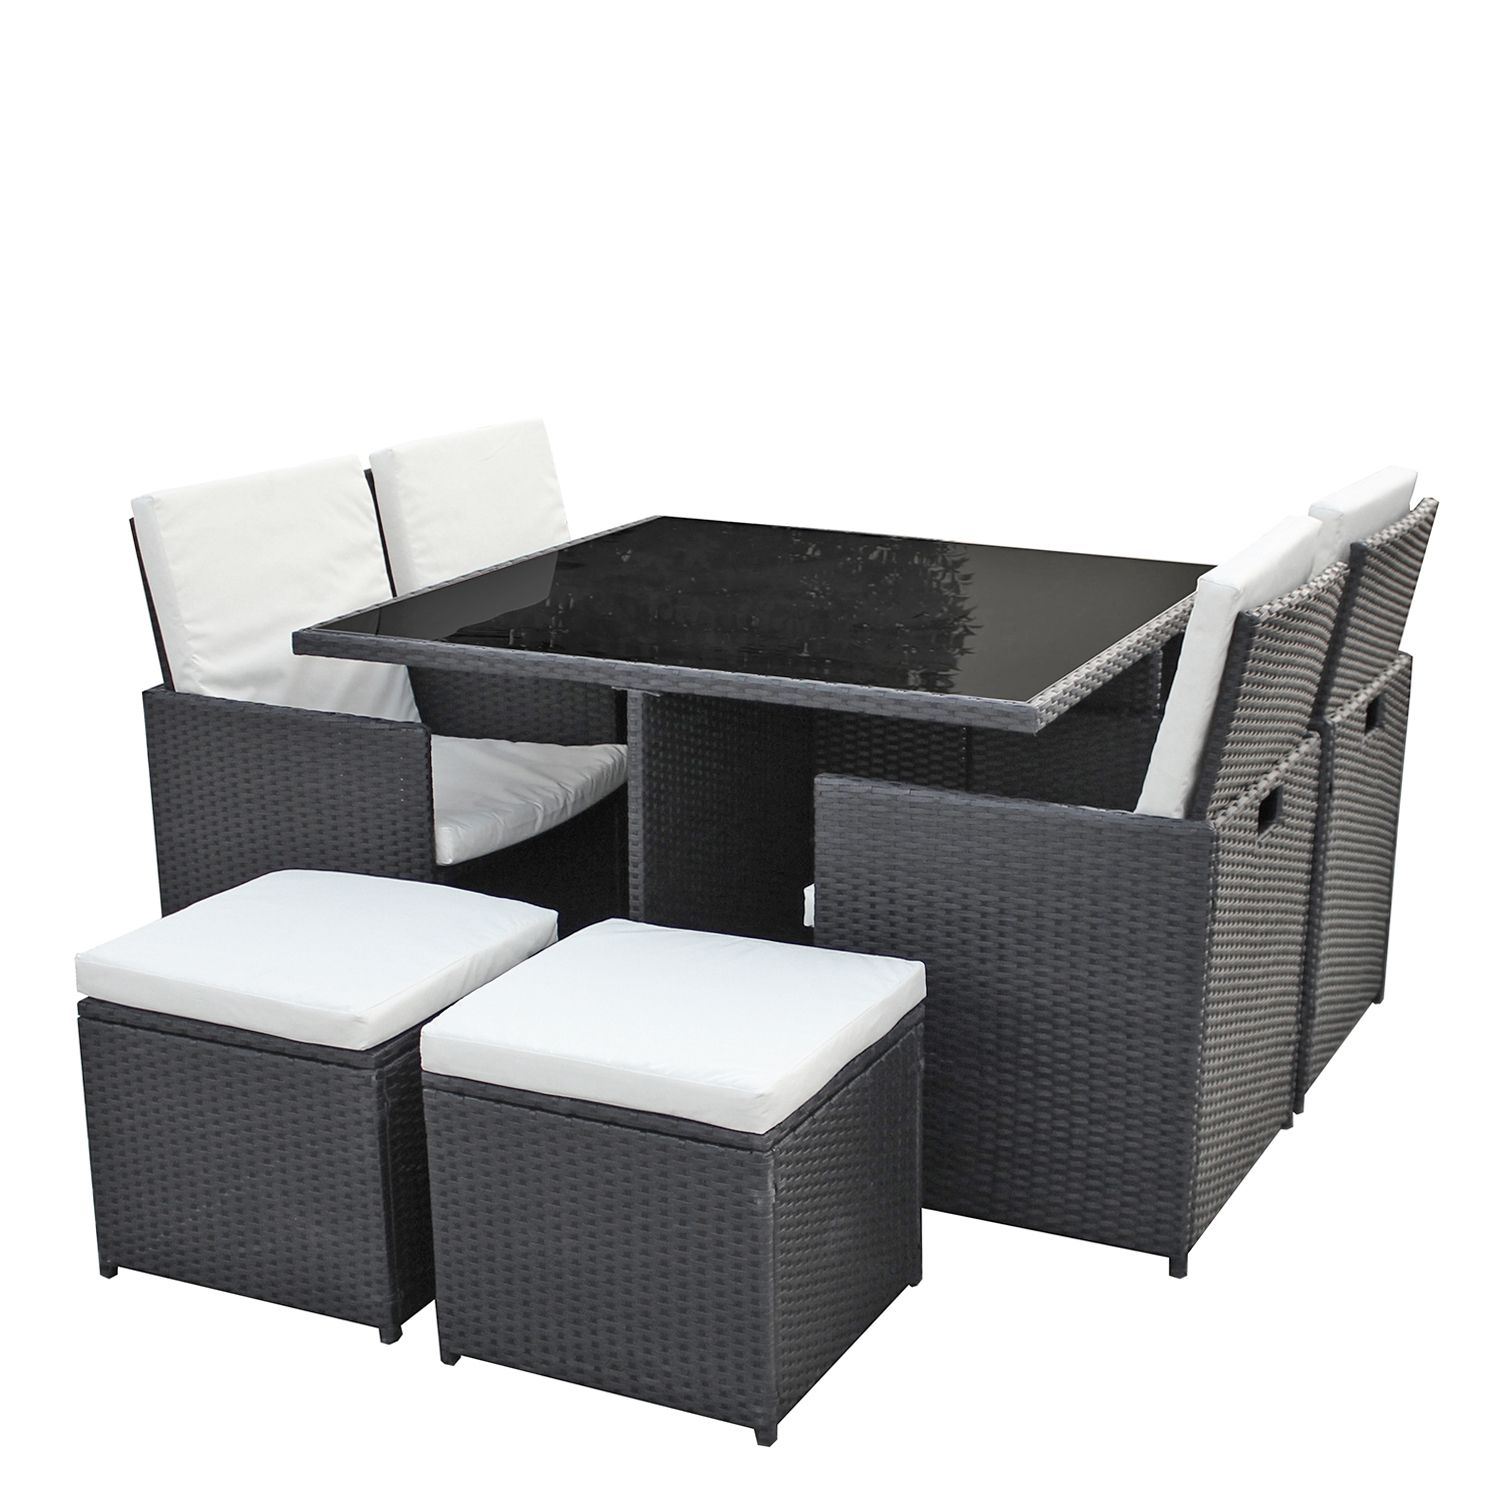 gartenm bel set 4er 4 sitzgruppe dining lounge polyrattan inkl 4 sitzhocker ebay. Black Bedroom Furniture Sets. Home Design Ideas